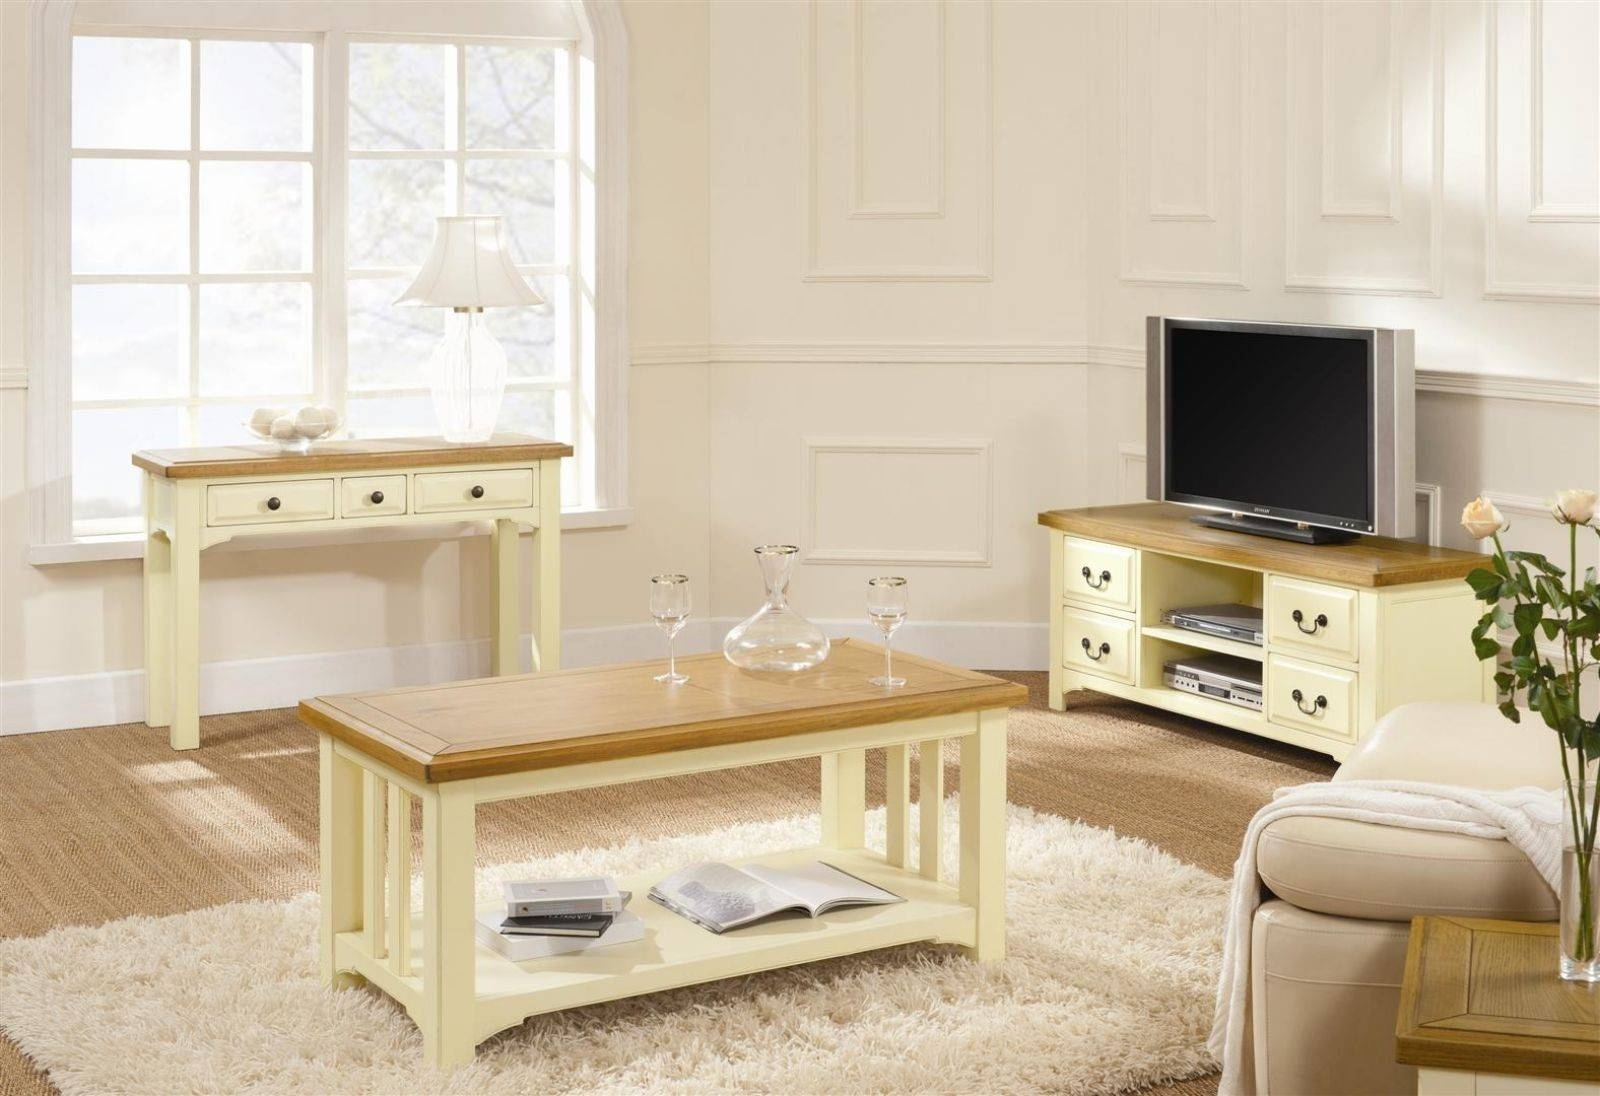 Coffee Table: Astonishing Black Wood Coffee Table Ideas Black Pertaining To Cream Coffee Tables With Drawers (View 5 of 25)